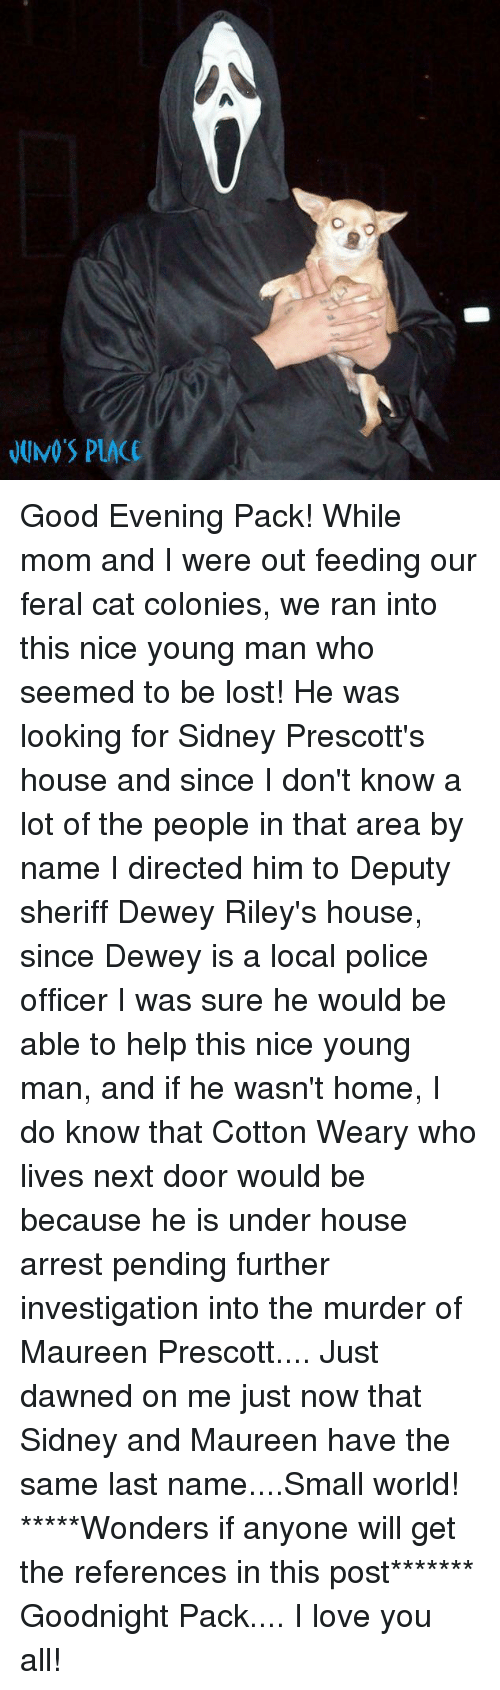 Cats, Dewey, and Love: JUNO'S PLAC Good Evening Pack!  While mom and I were out feeding our feral cat colonies, we ran into this nice young man who seemed to be lost!   He was looking for Sidney Prescott's house and since I don't know a lot of the people in that area by name I directed him to Deputy sheriff Dewey Riley's house, since Dewey is a local police officer I was sure he would be able to help this nice young man, and if he wasn't home, I do know that Cotton Weary who lives next door would be because he is under house arrest pending further investigation into the murder of Maureen Prescott....   Just dawned on me just now that Sidney and Maureen have the same last name....Small world!   *****Wonders if anyone will get the references in this post*******  Goodnight Pack.... I love you all!